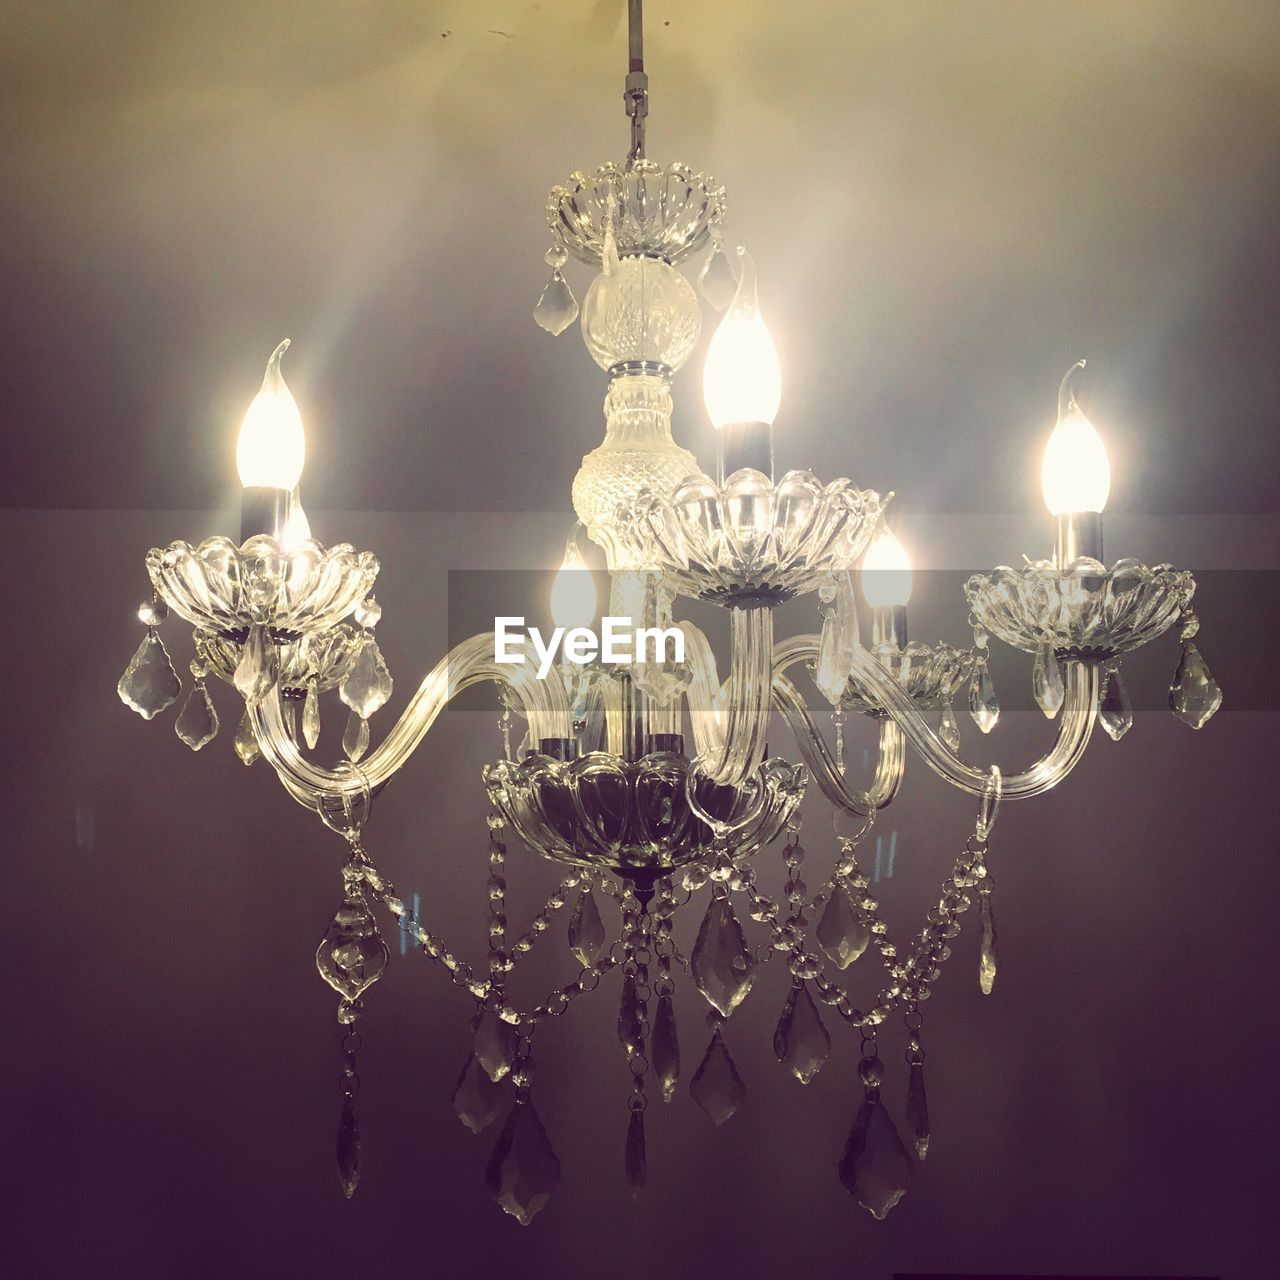 lighting equipment, illuminated, electricity, decoration, glowing, hanging, light bulb, no people, ornate, crystal, luxury, low angle view, close-up, indoors, christmas decoration